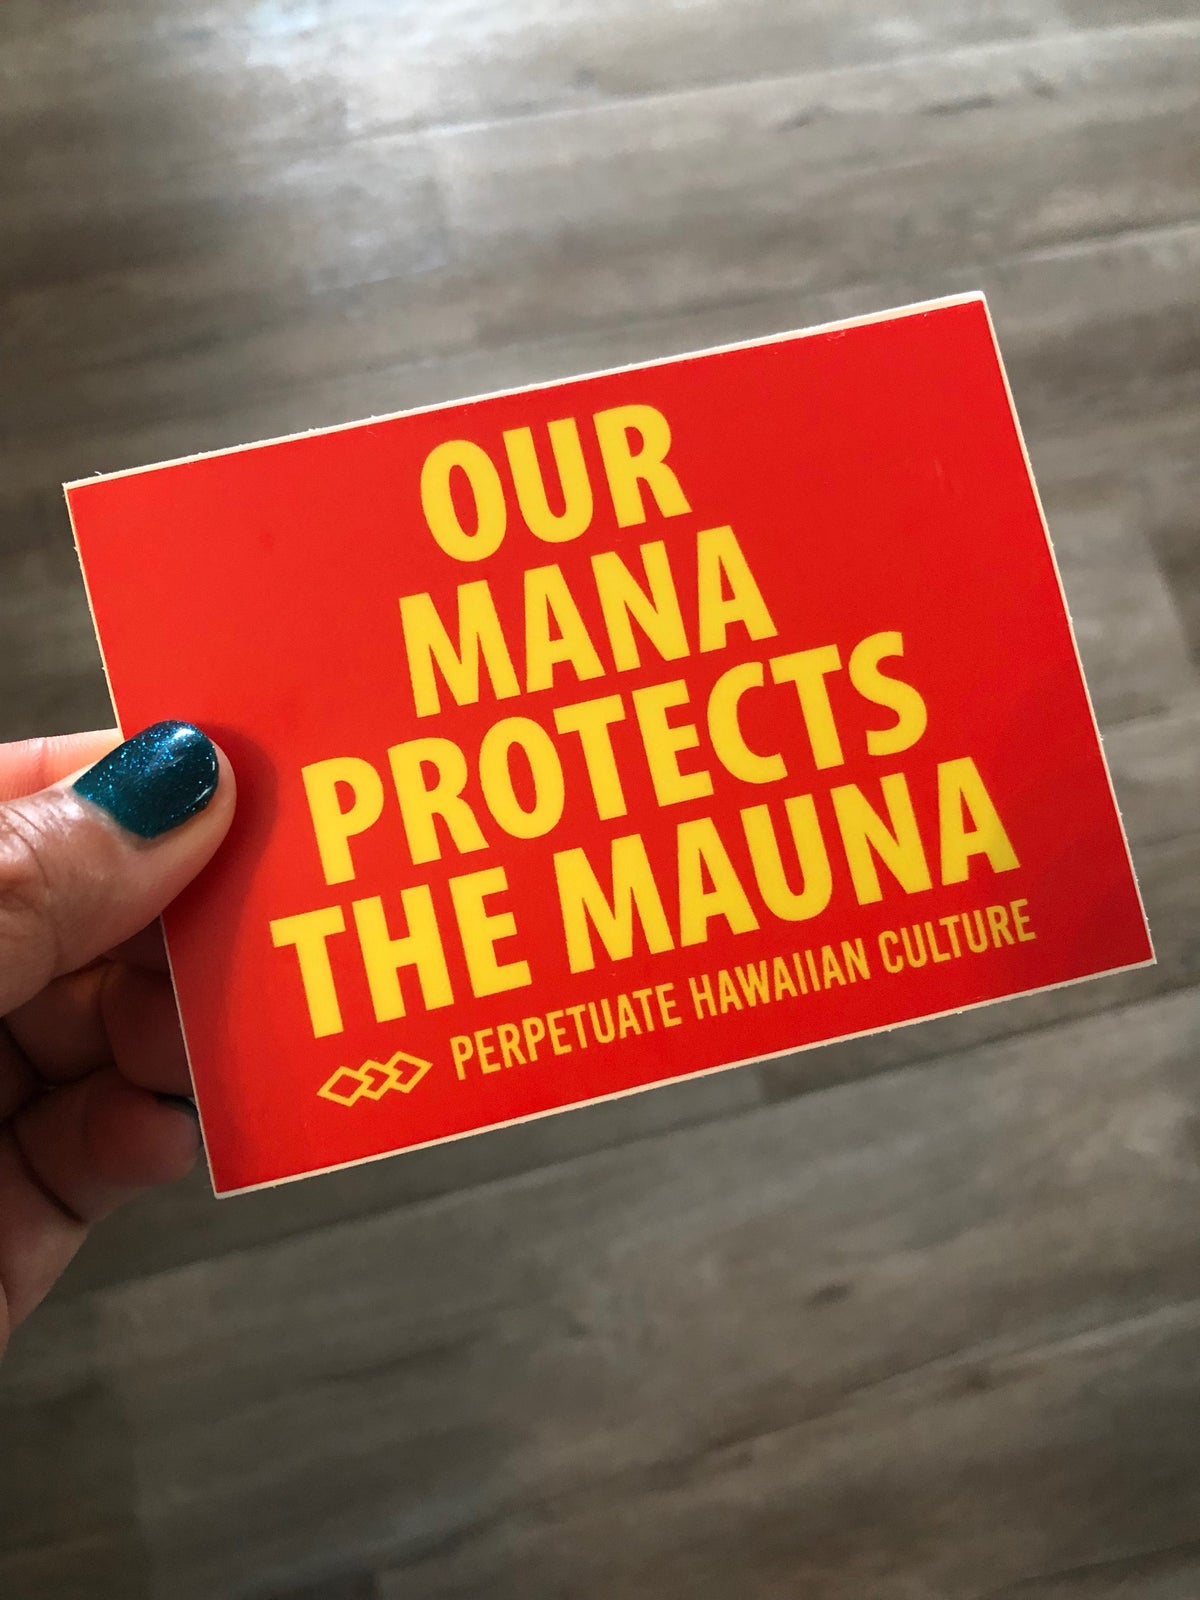 Image of Our Mana Protects the Mauna Sticker